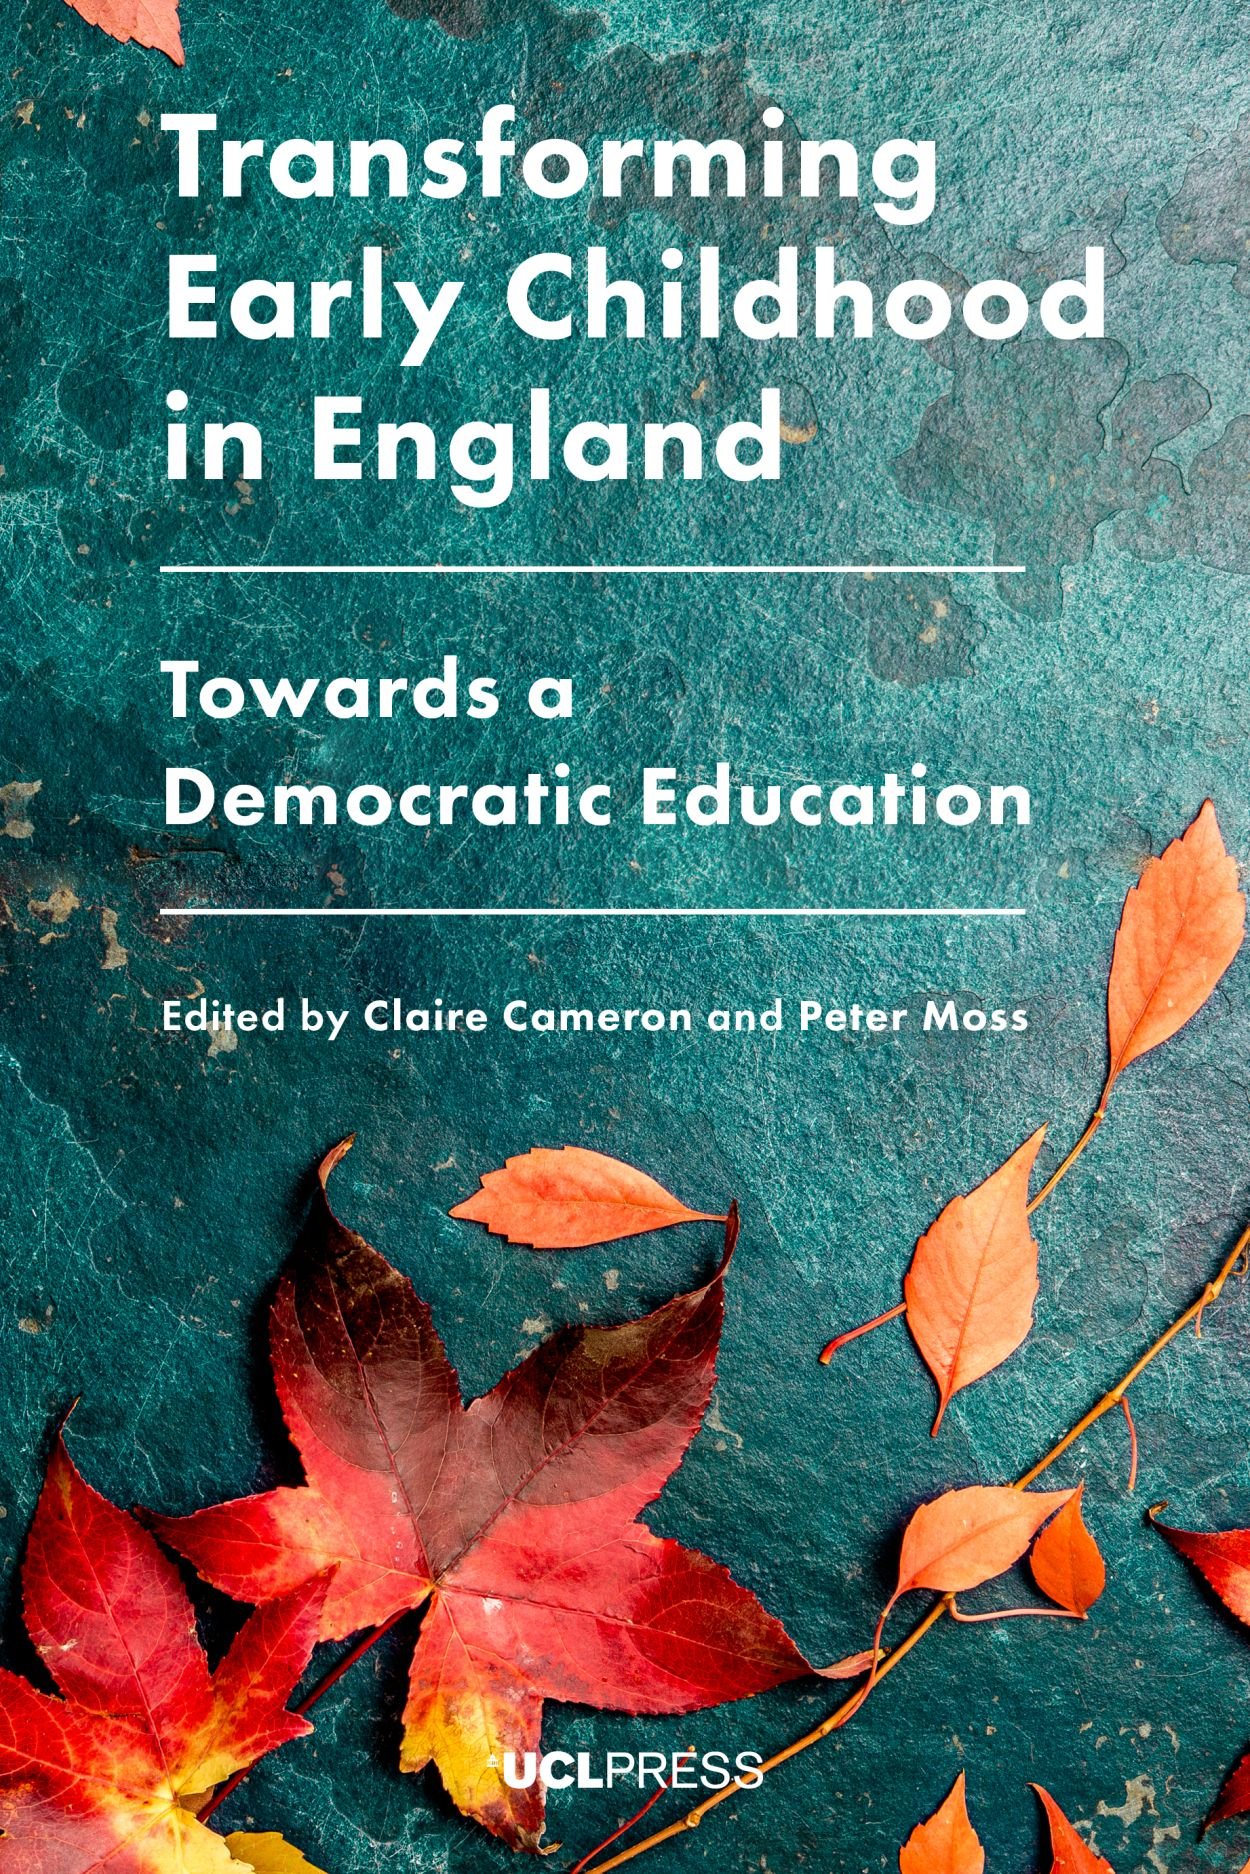 Transforming Early Childhood in England: Towards a Democratic Education